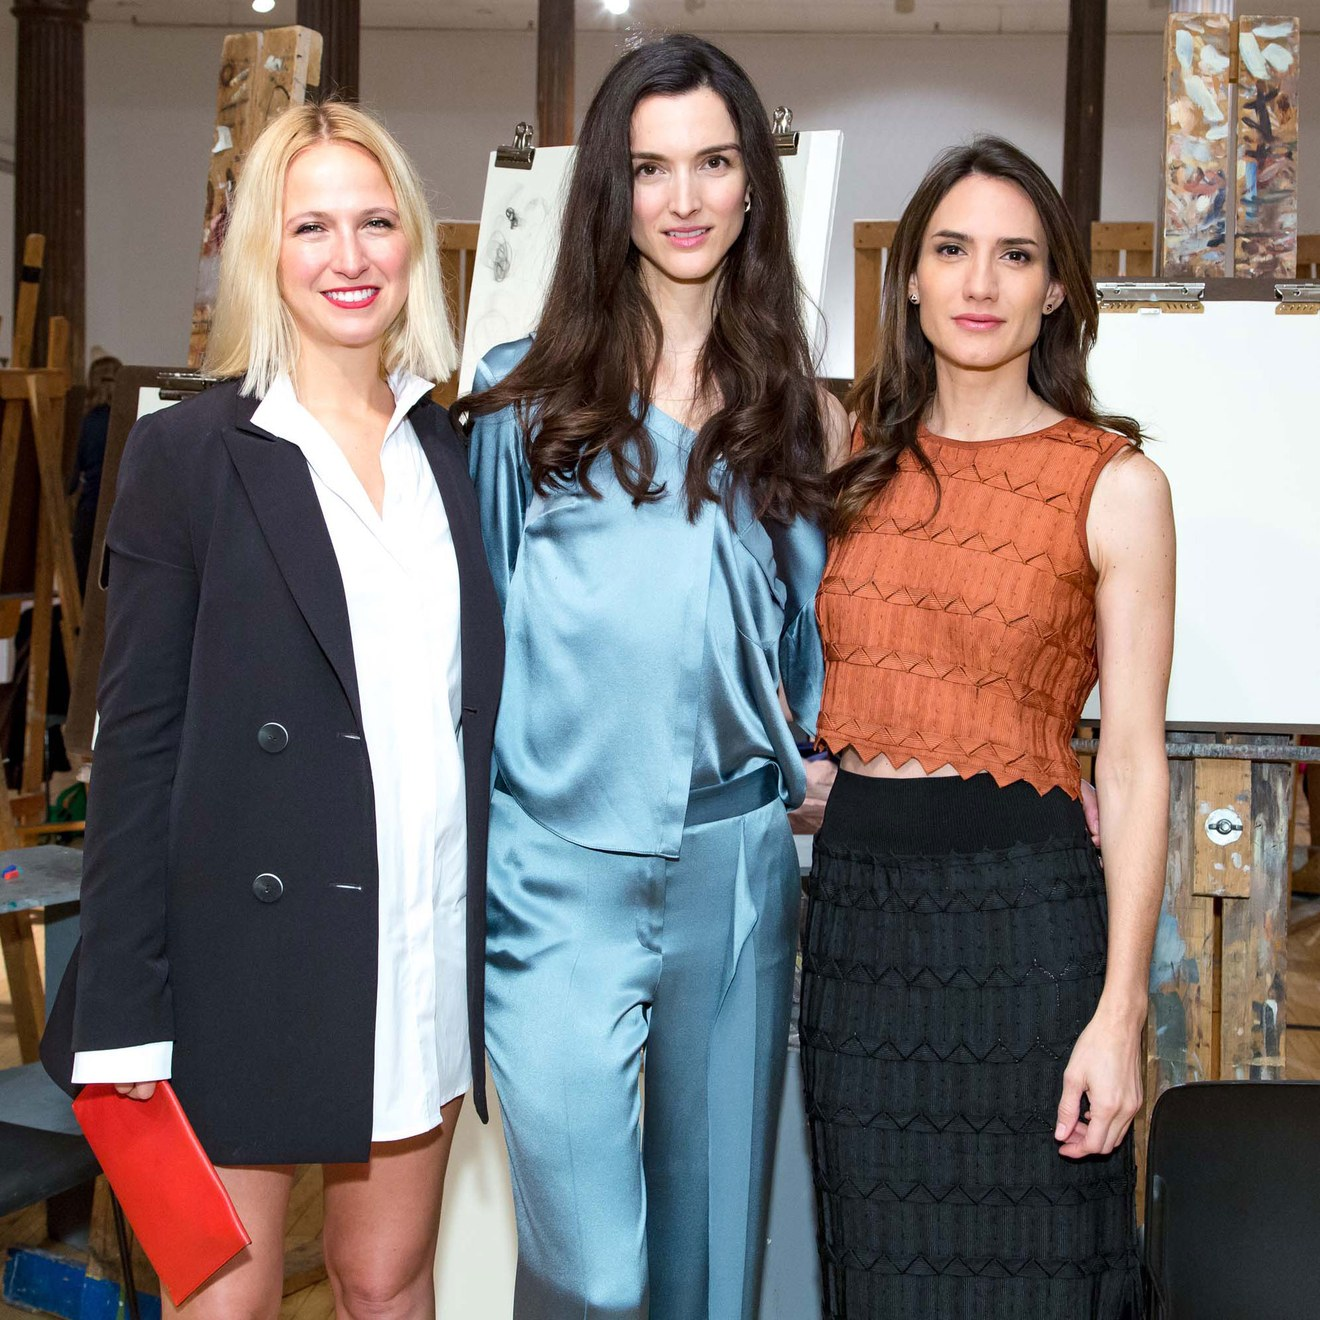 Misha Nonoo and More Attend an Intimate Drawing Party at the New York Academy of Art